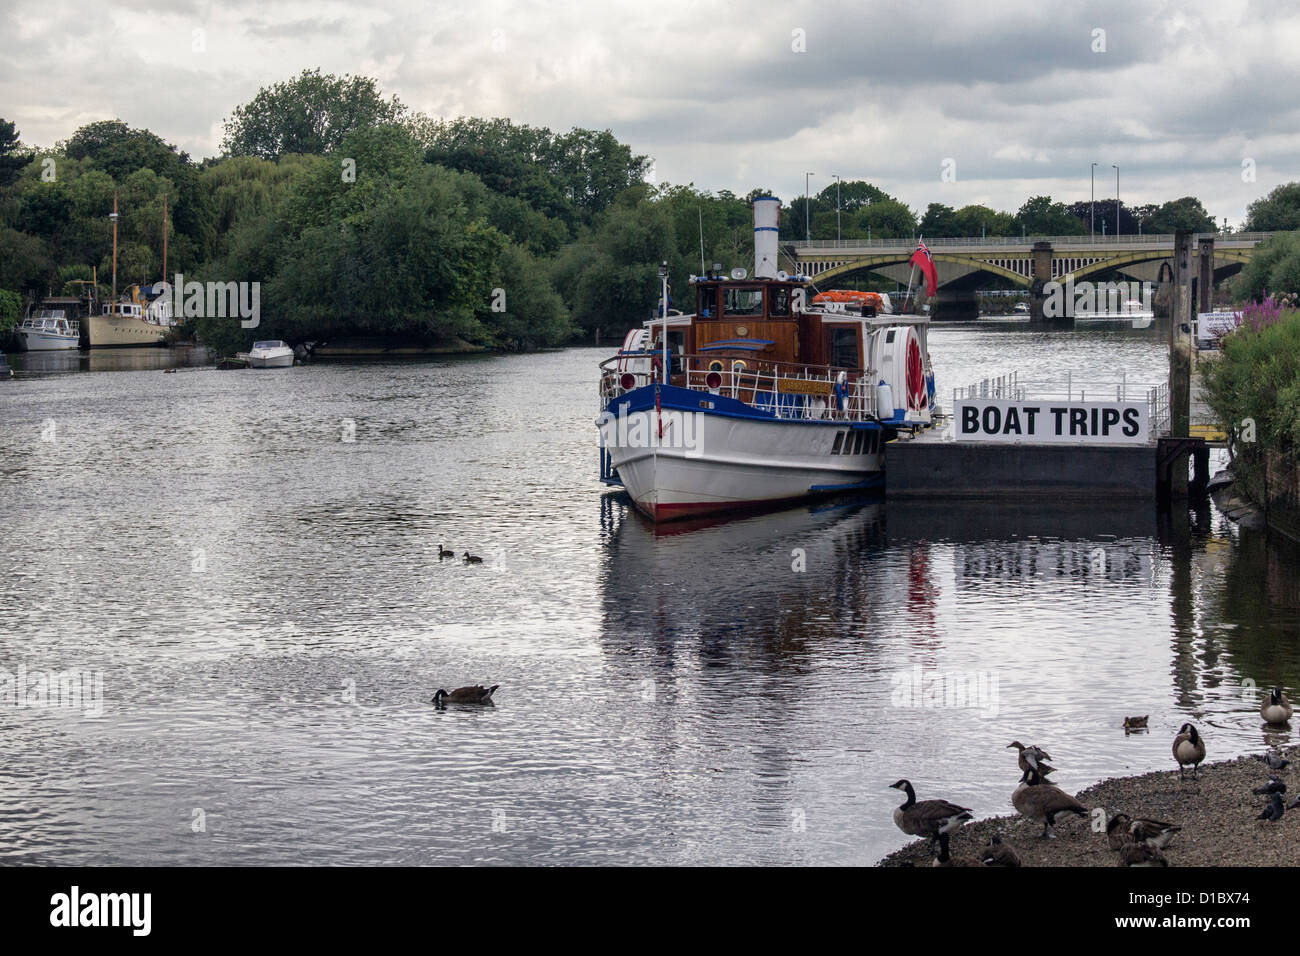 Turks Launches runs boat trips on the River Thames in Summer - Richmond upon TRichmond, Surrey, Greater London, - Stock Image